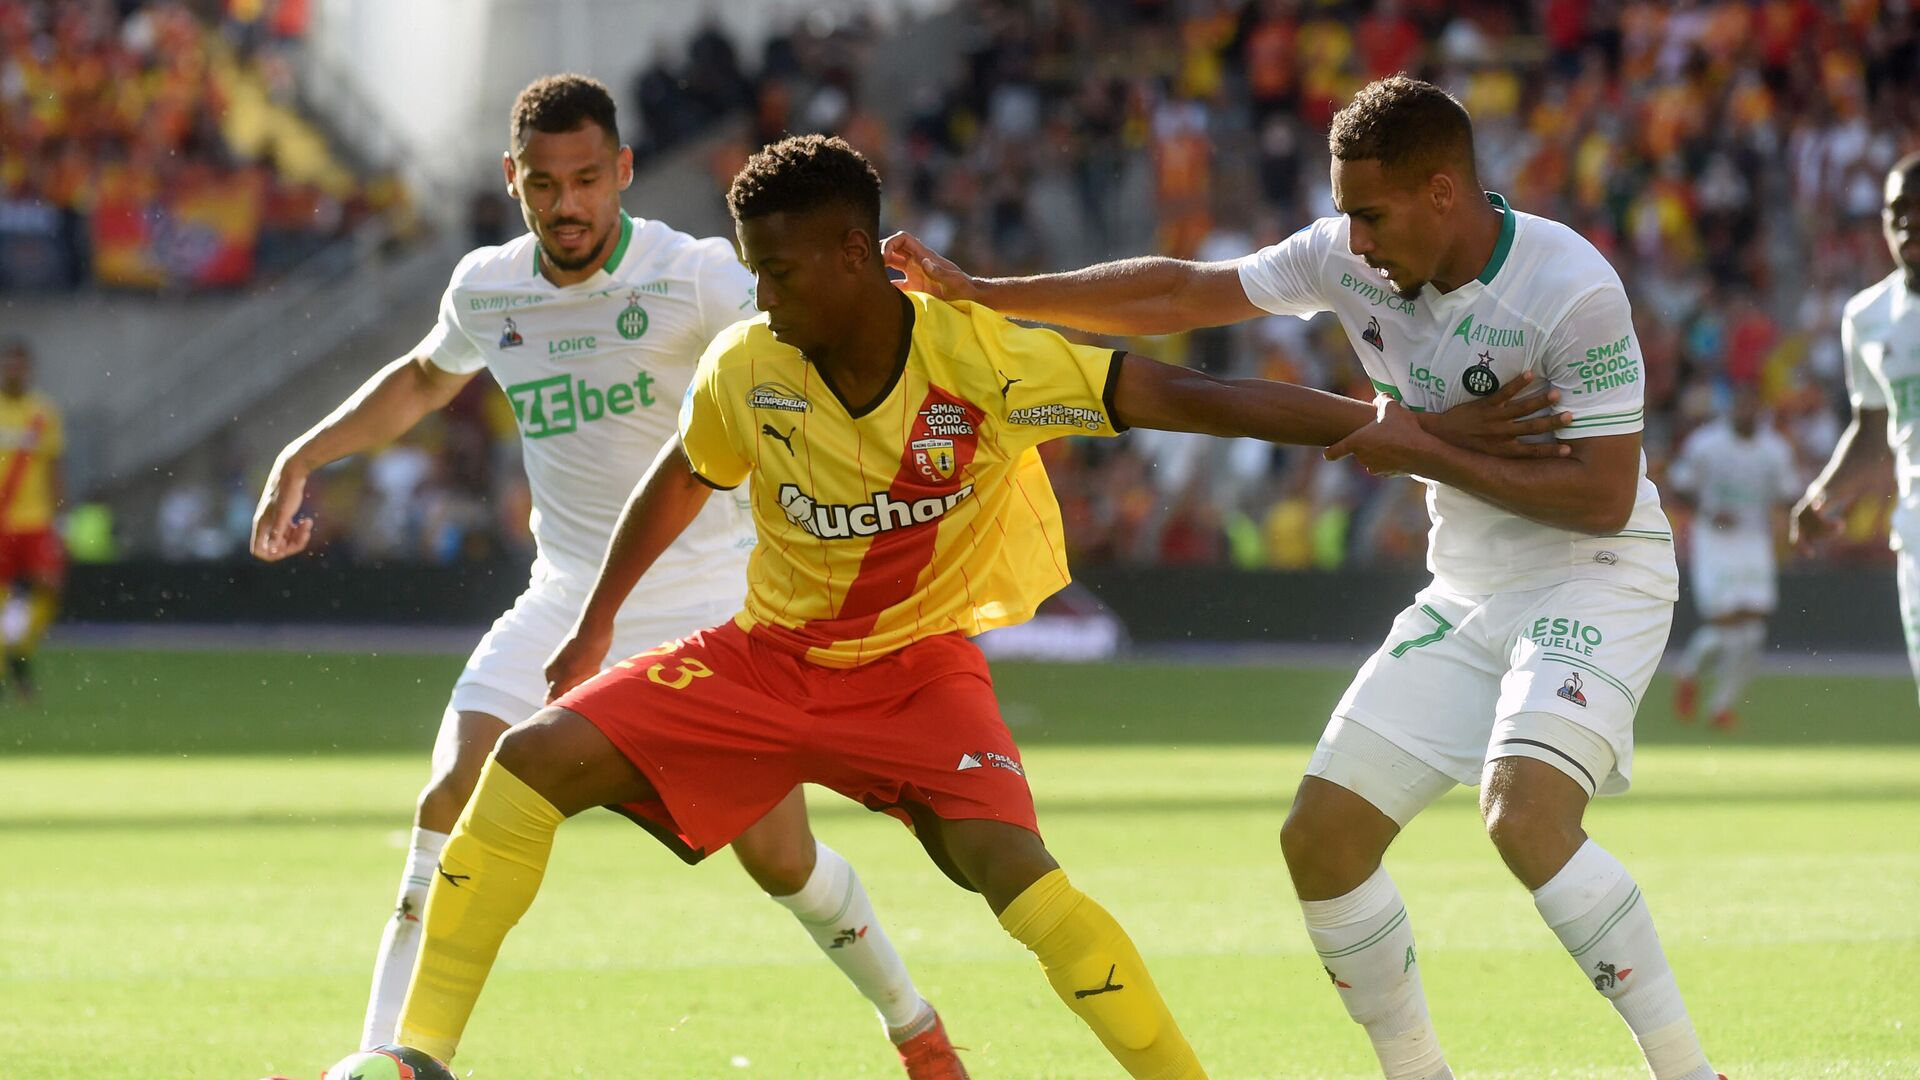 Lens's Bokote Banza and Saint Etienne's Yvann Macon fight for the ball during the French L1 football match between Lens and Saint-Etienne at the Bollaert Stadium in Lens, on August 15, 2021. (Photo by FRANCOIS LO PRESTI / AFP) - РИА Новости, 1920, 15.08.2021